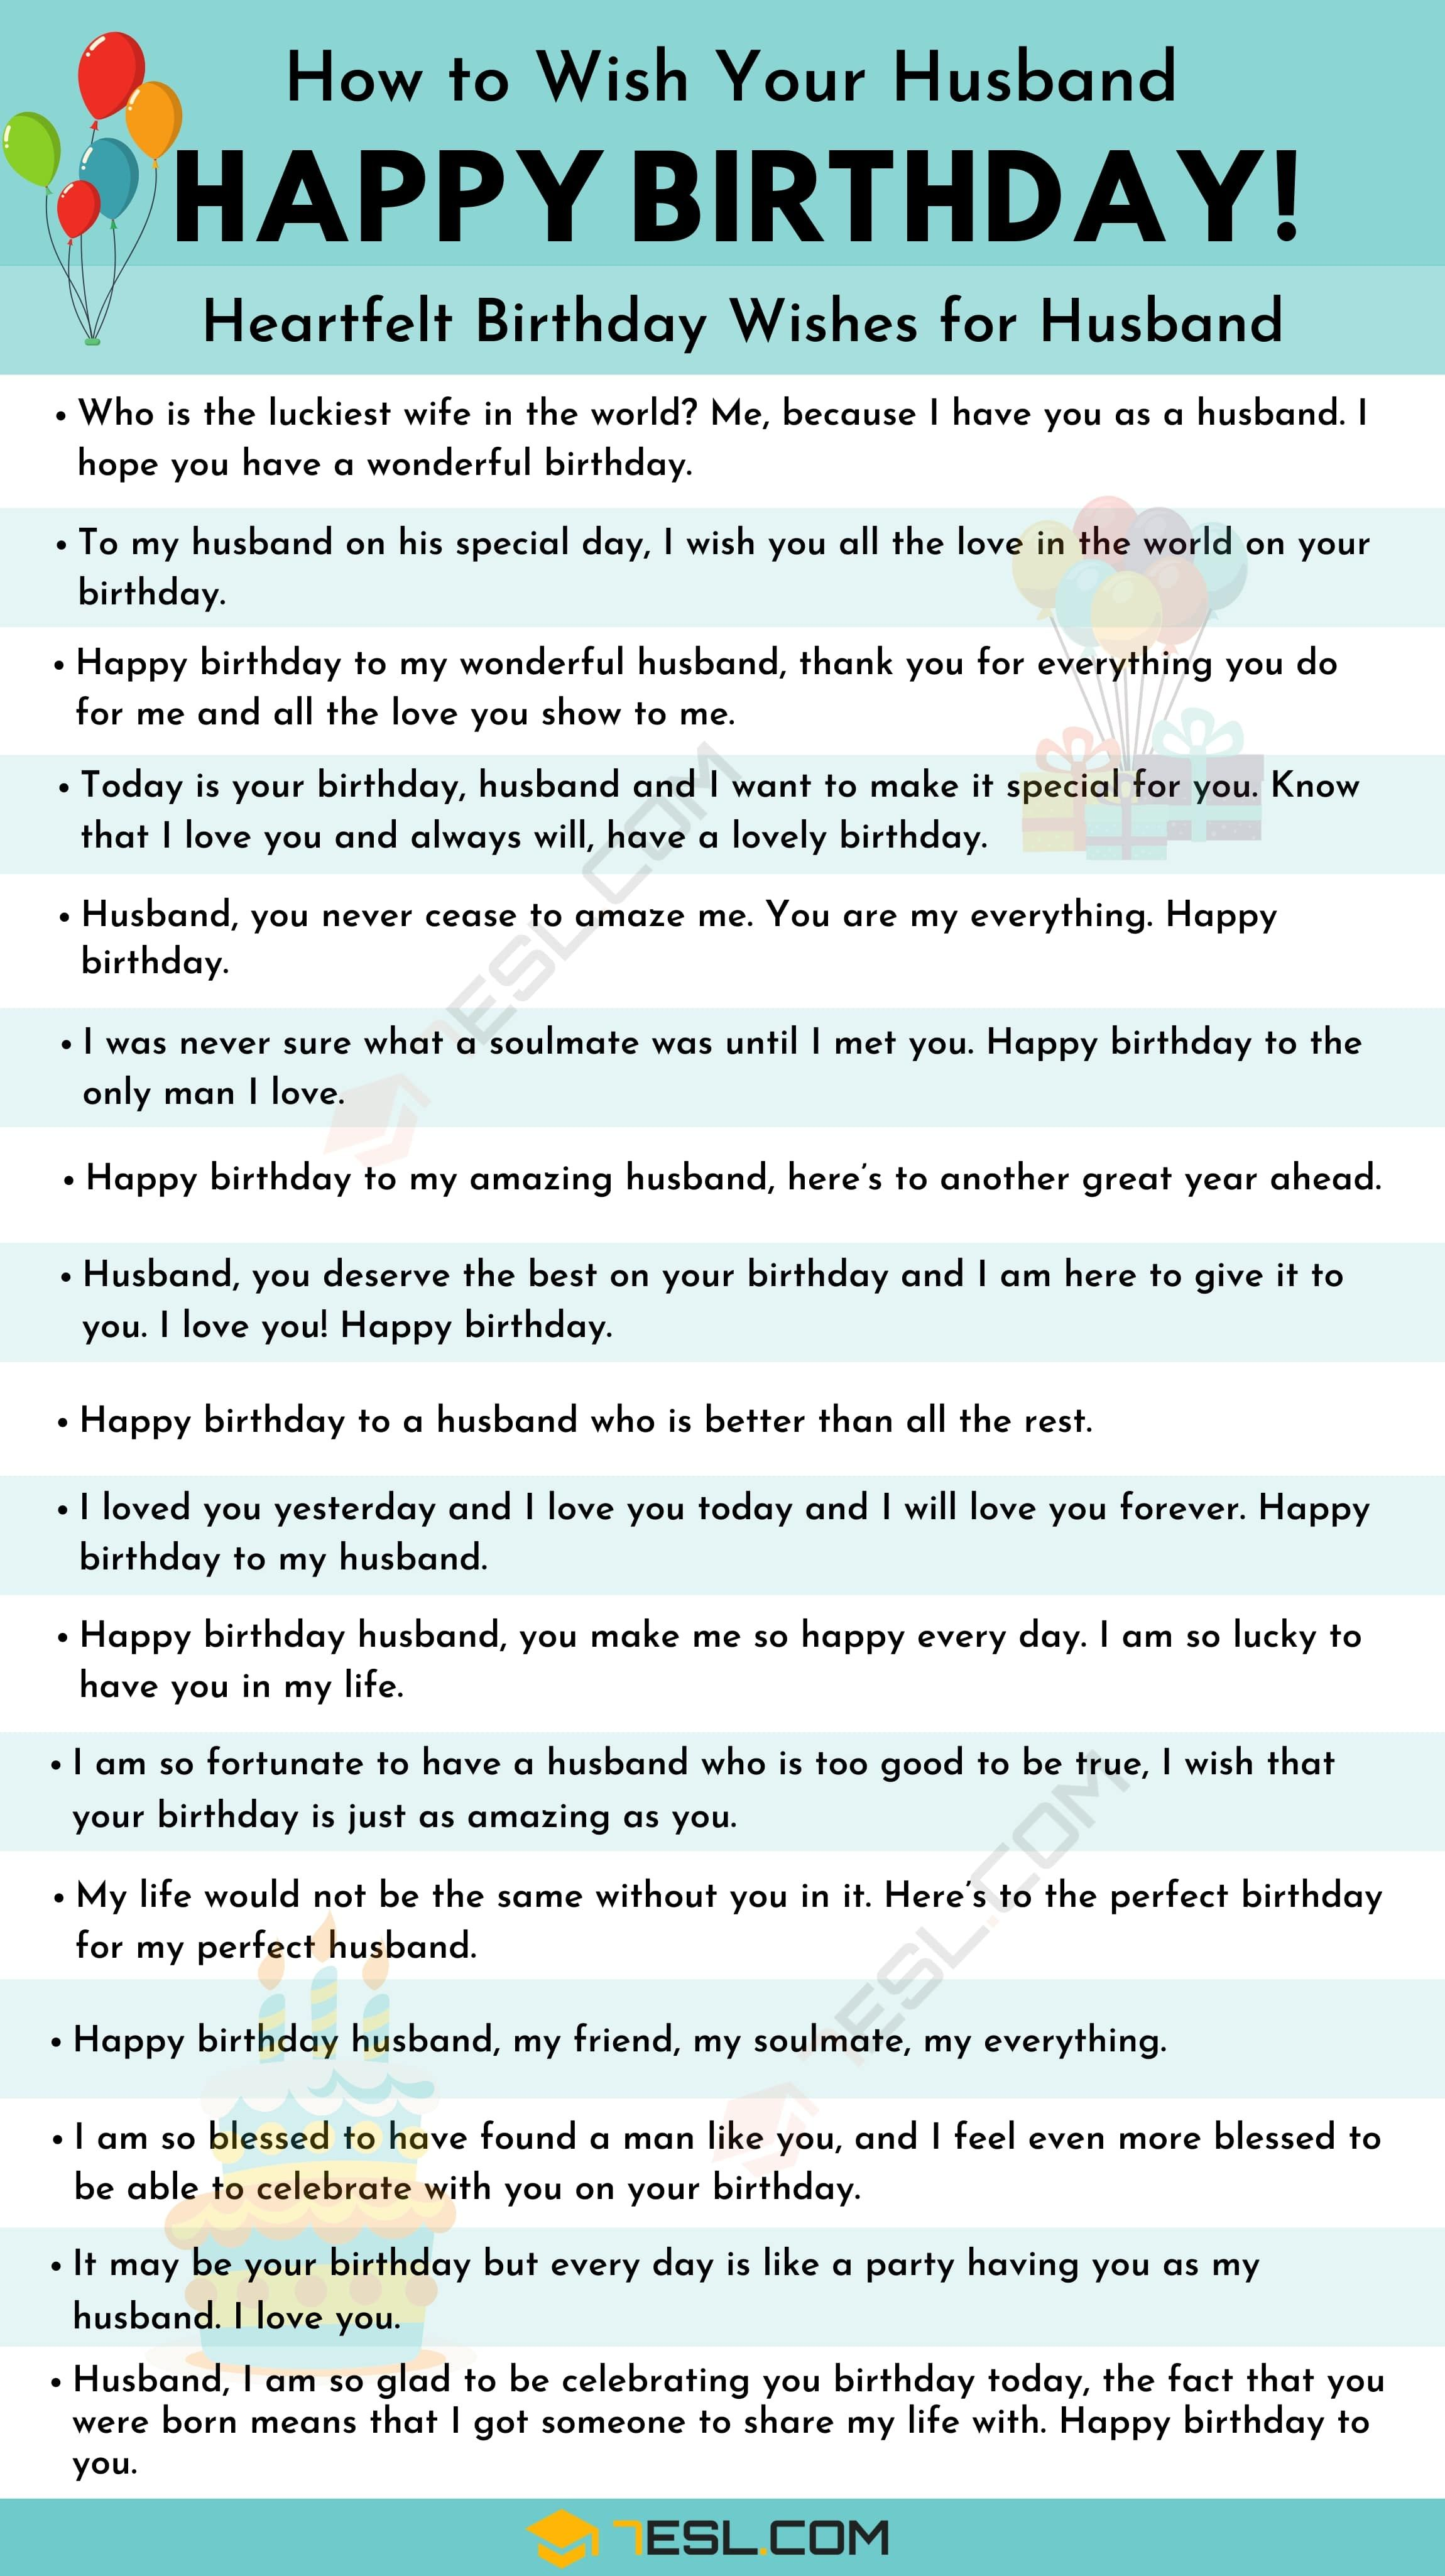 Birthday Wishes 500 Meaningful Happy Birthday Messages For Everyone 7esl Happy Birthday Husband Quotes Happy Birthday Husband Birthday Words For Husband